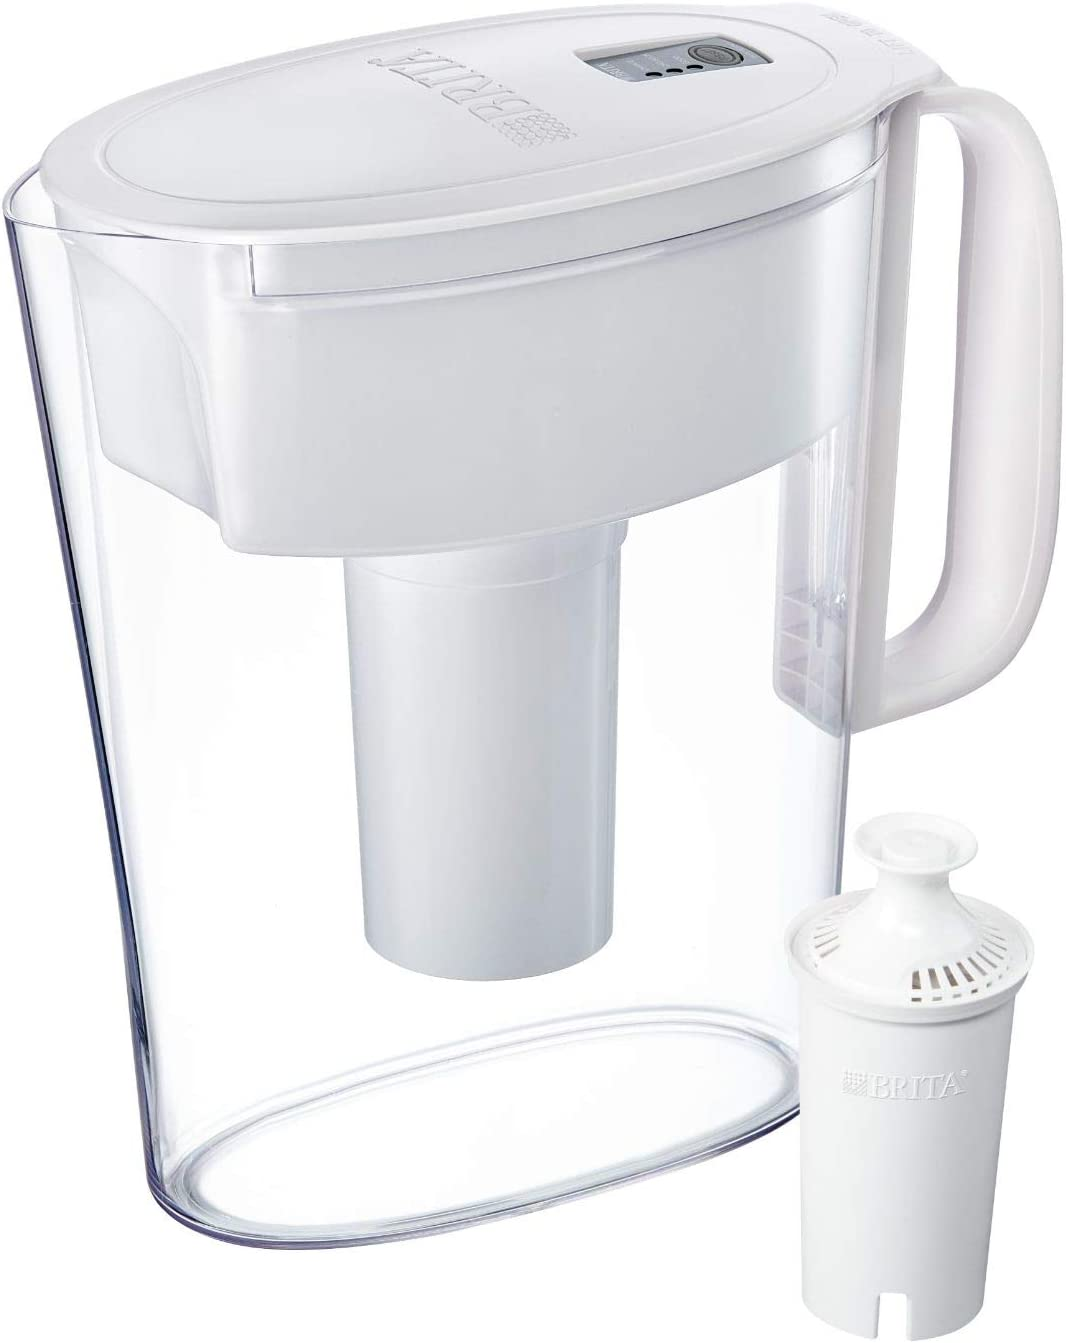 Brita 5 Cup BPA Free Water Filter Pitcher